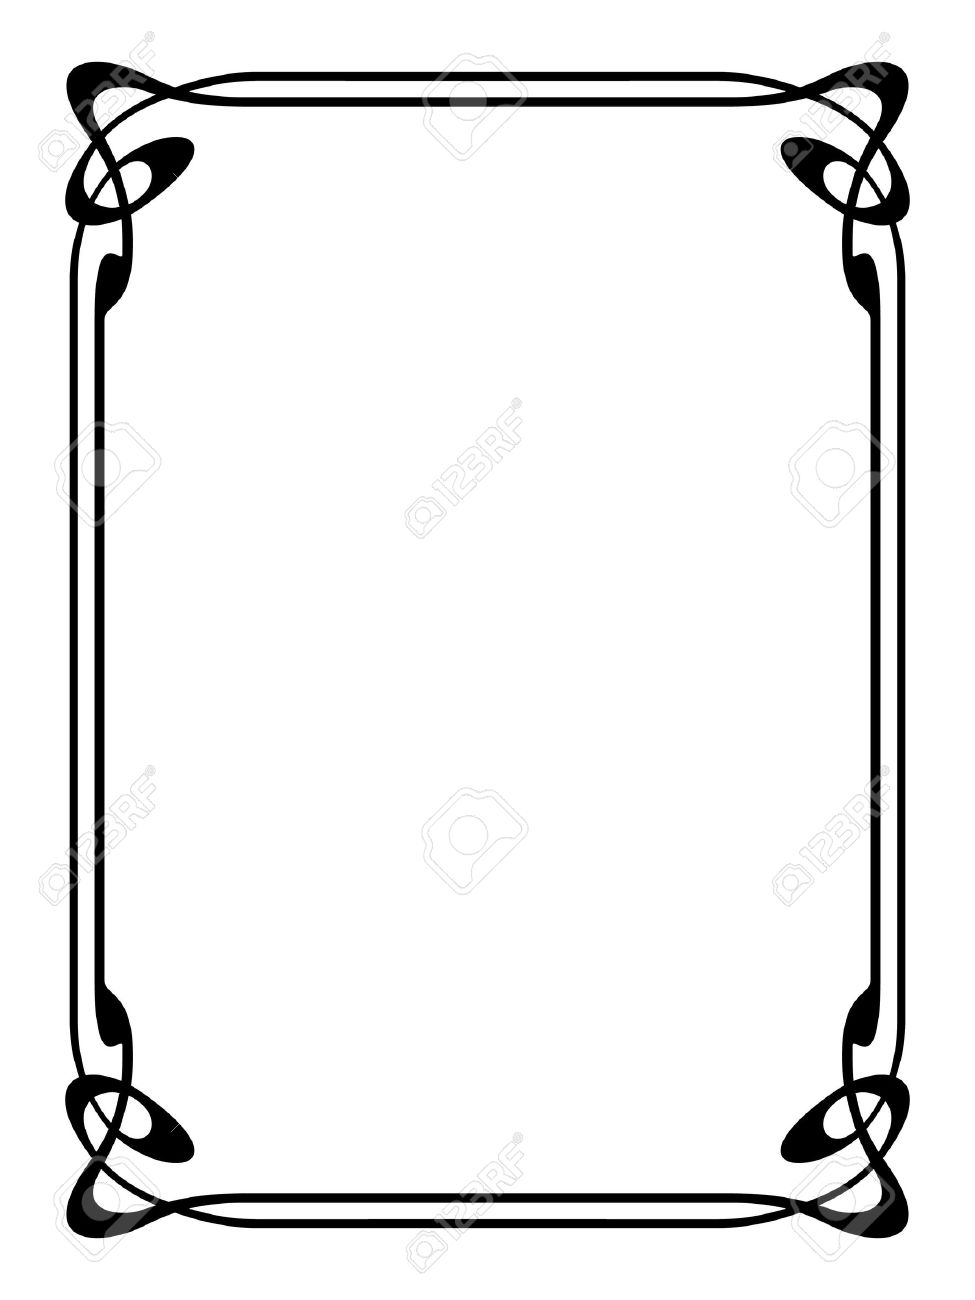 art nouveau modern ornamental decorative frame royalty free cliparts rh 123rf com fancy border vector art fancy border vector art